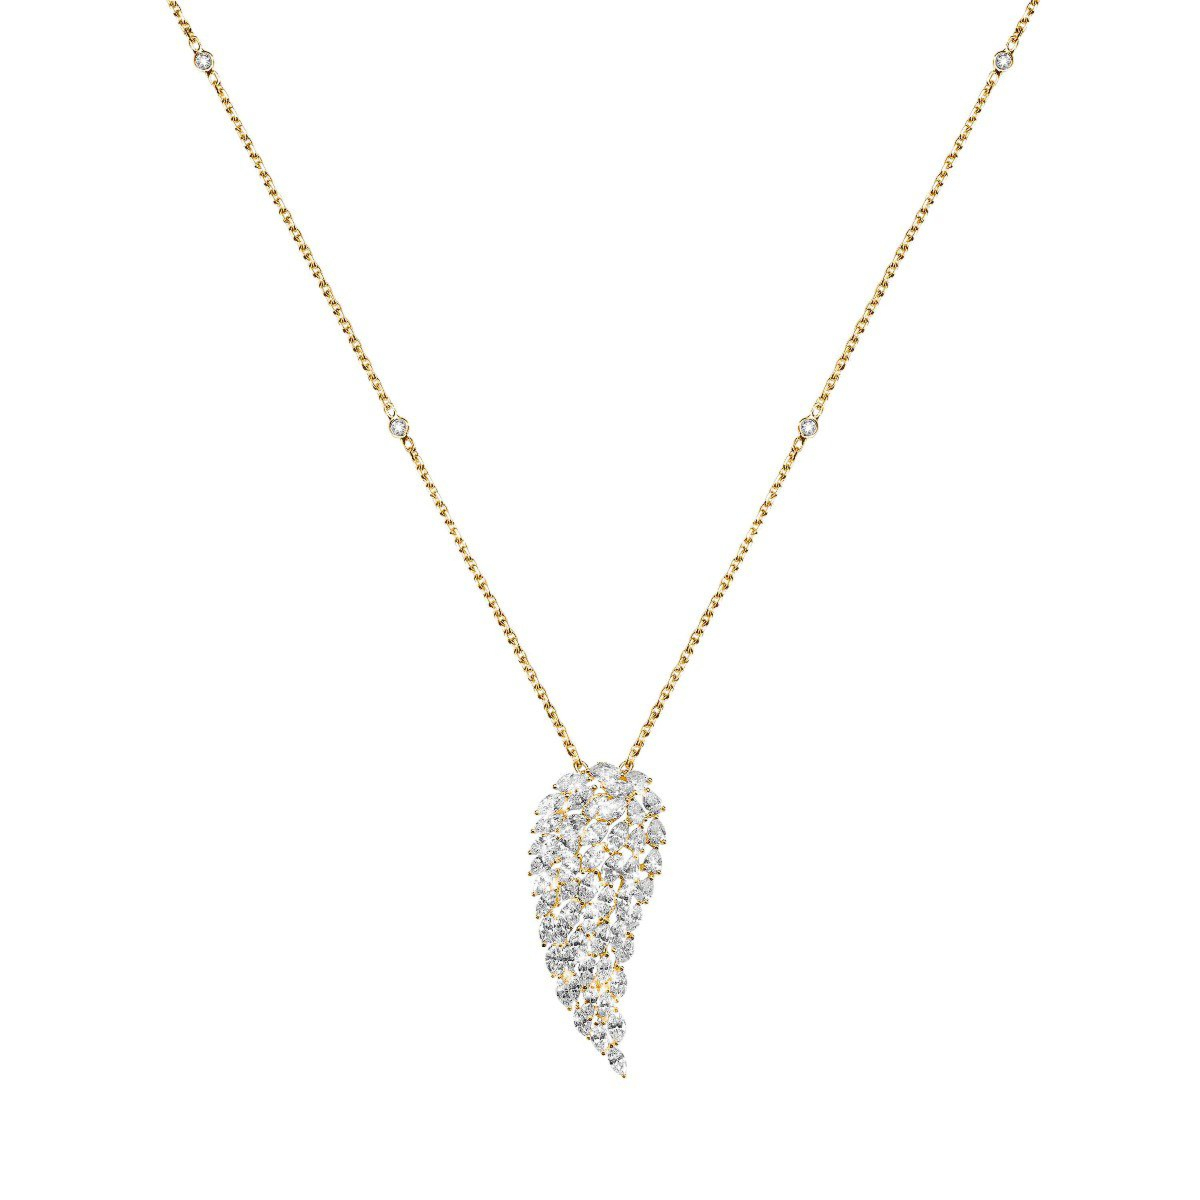 Angel Vertical Regarding Most Popular Diamond Sautoir Necklaces In Yellow Gold (View 2 of 25)